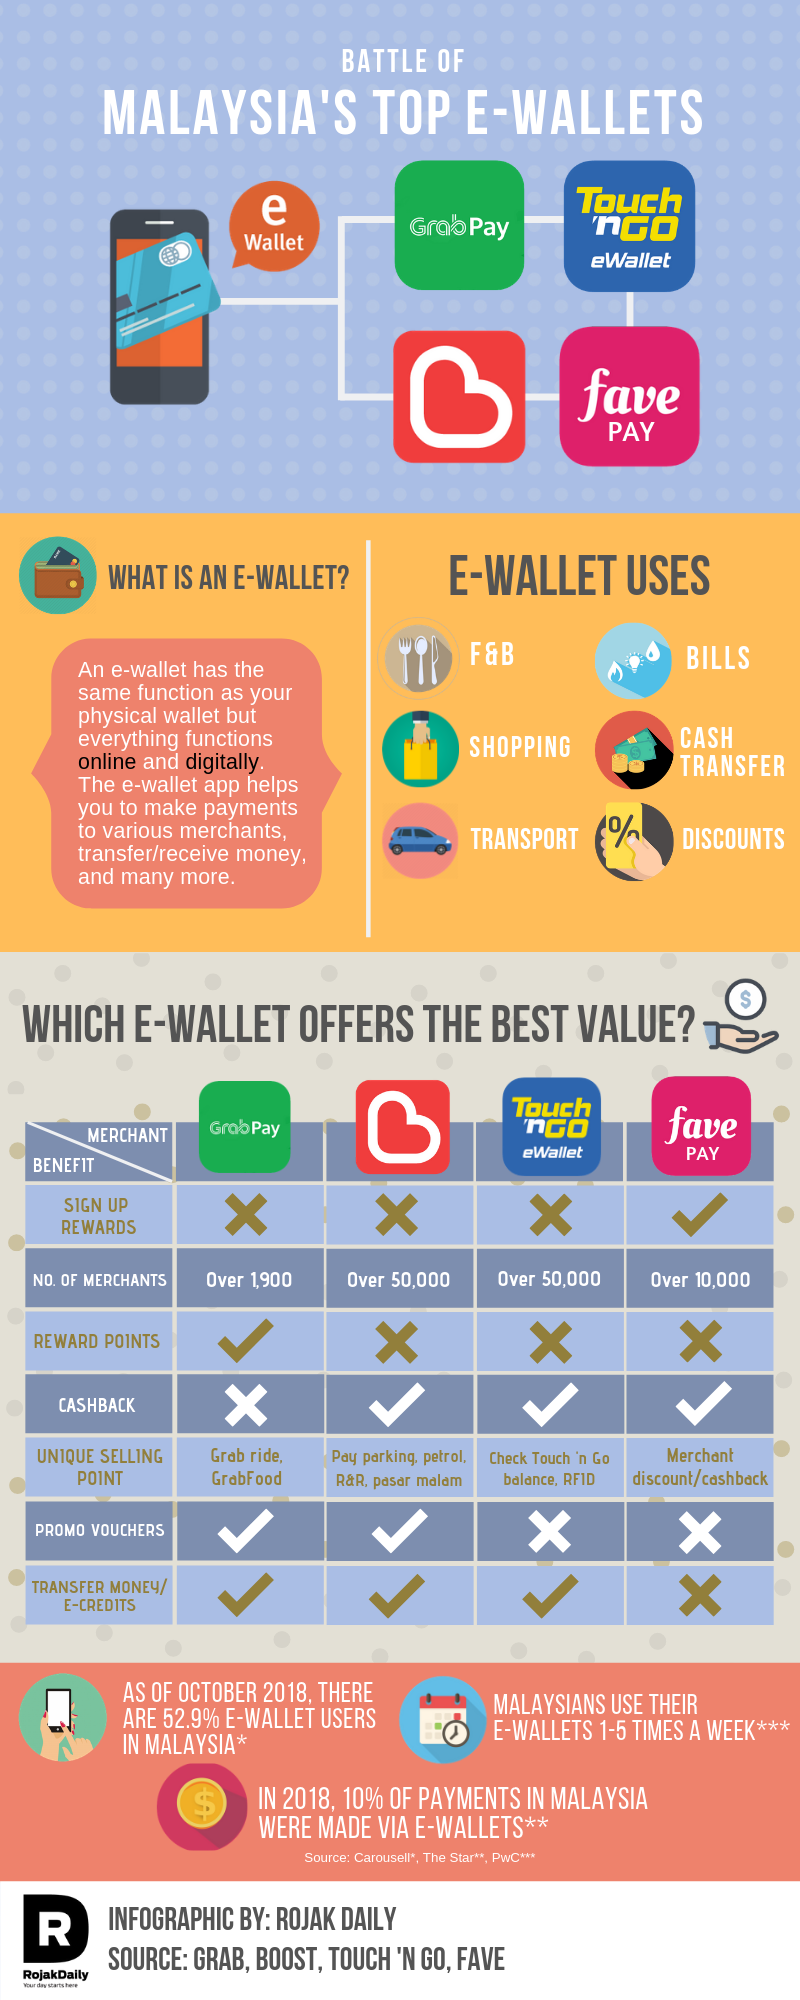 Here's a clearer look at the most popular e-wallets in Malaysia.